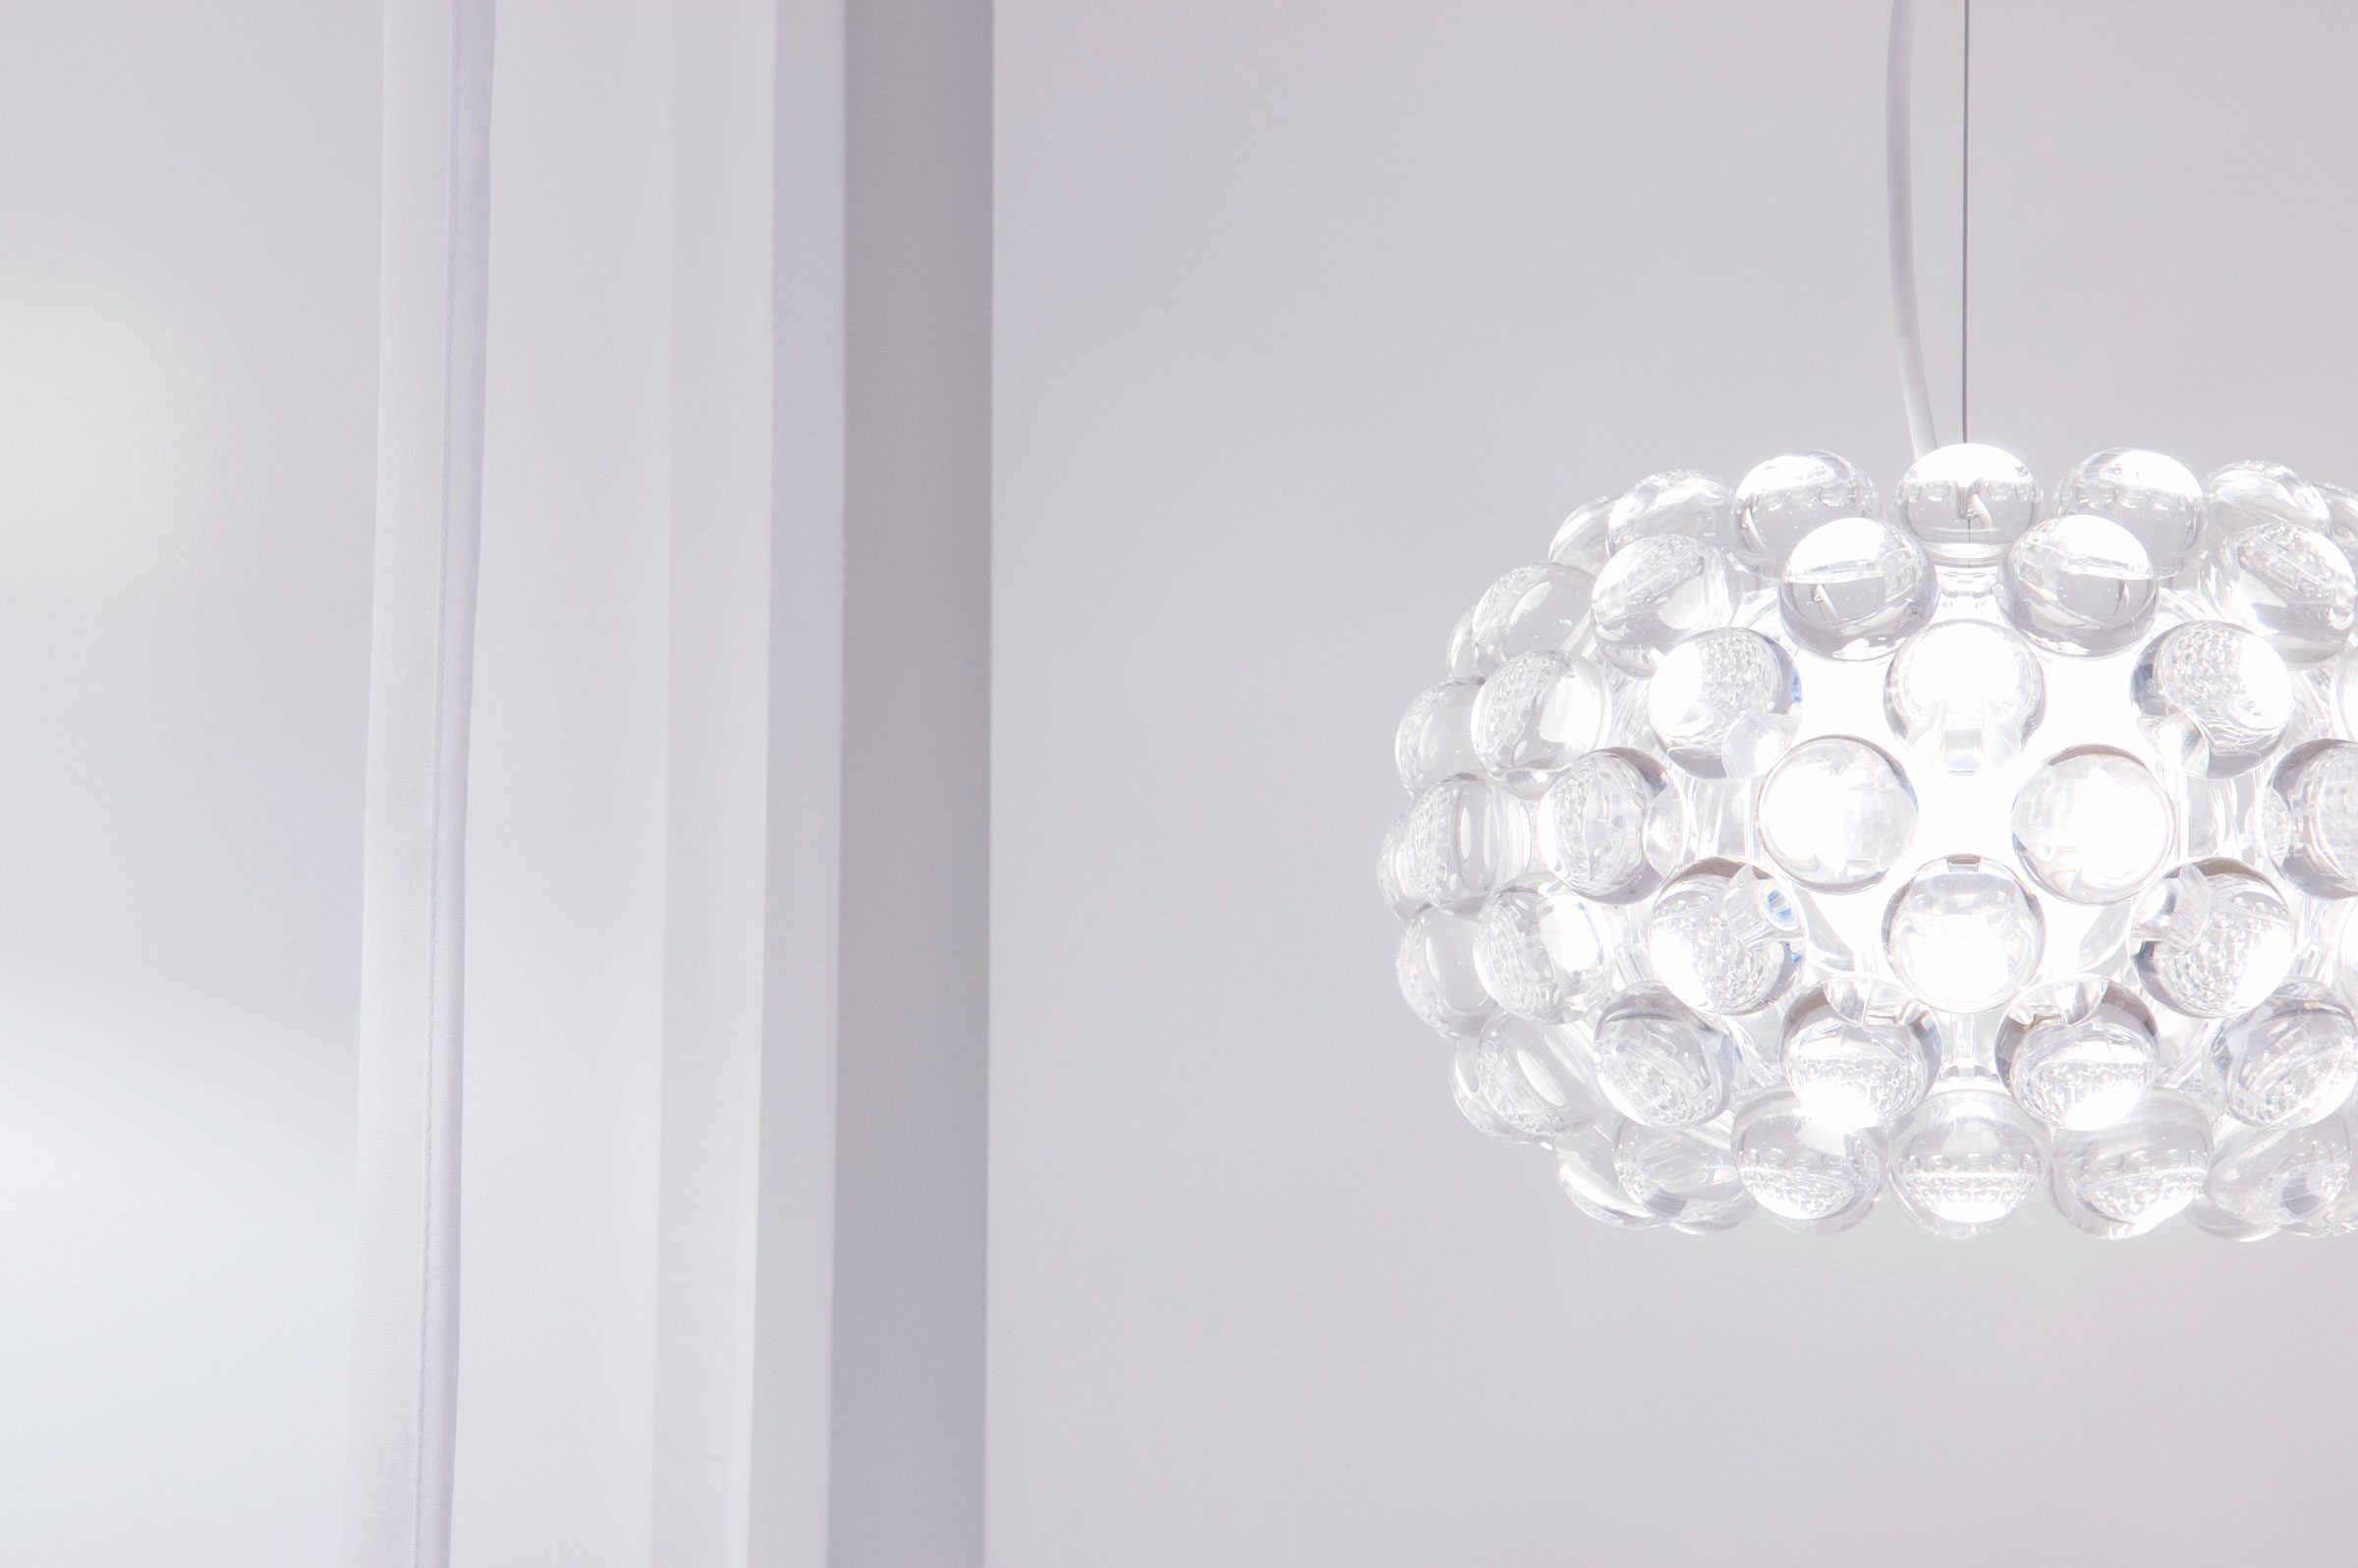 Best Methods For Cleaning Lighting Fixtures: 8 Spring Cleaning Tips To Get It Done Faster